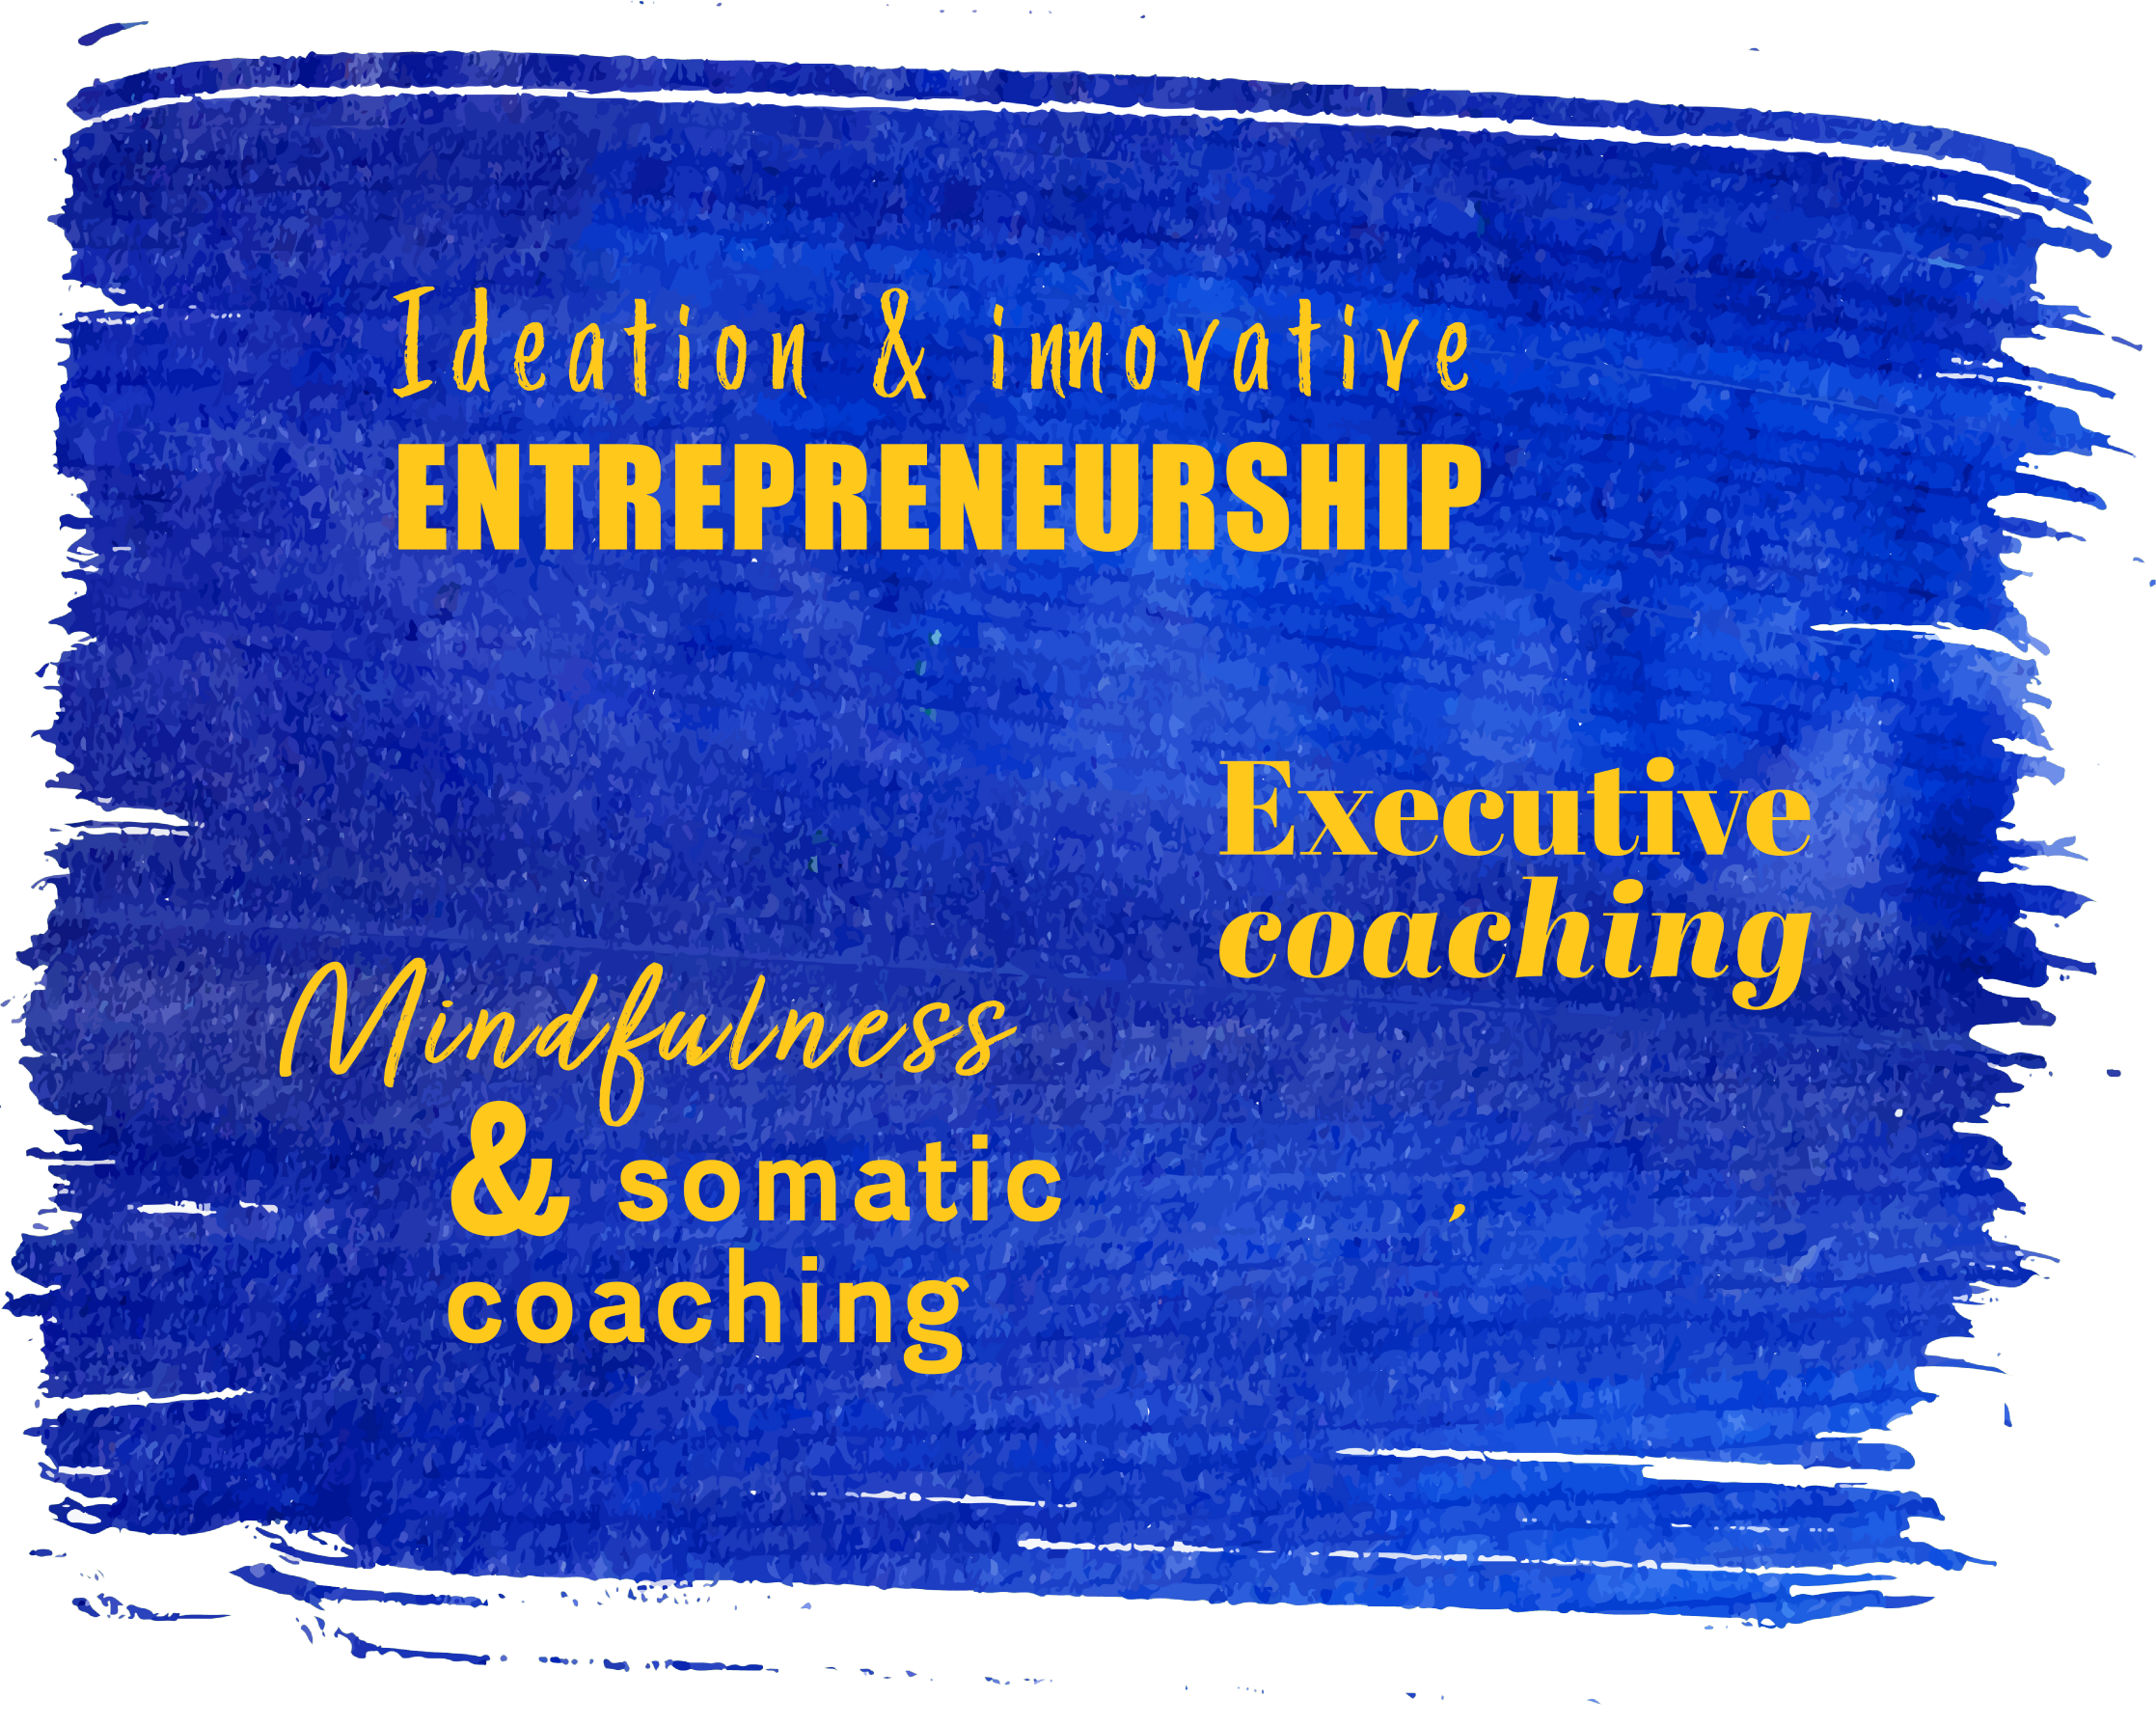 professional coaching solutions, ideation, entrepreneurs, executive coaching, innovative solutions, business ideas